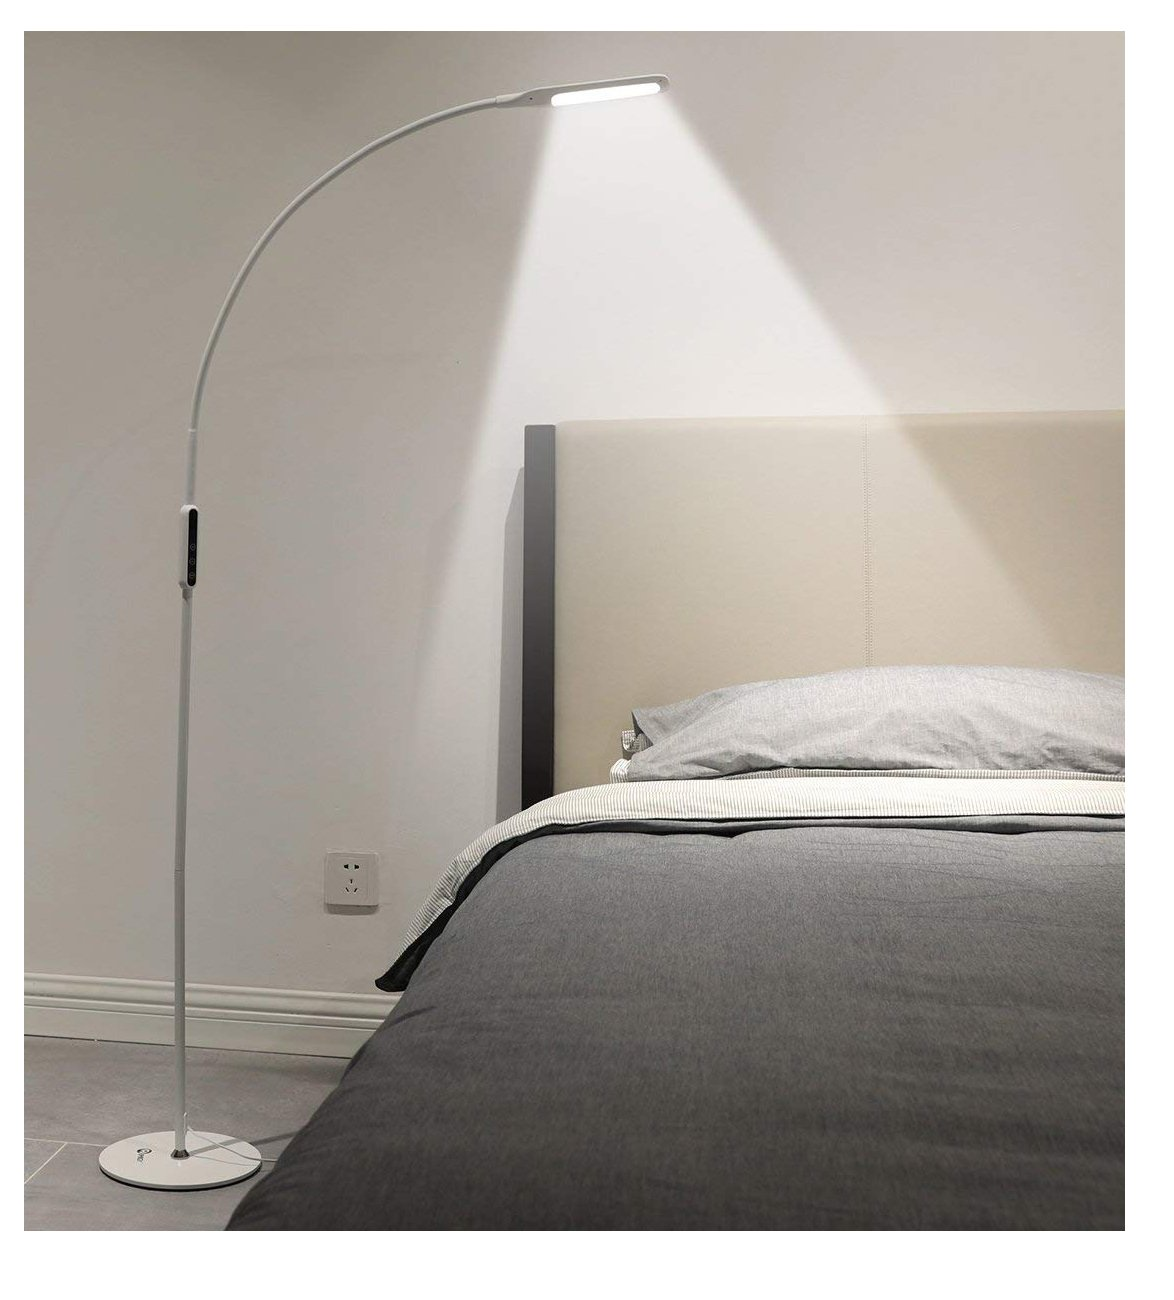 IMIGY Dimmable 9W Floor Lamp, Office/Work/Living Room Reading Flexible Gooseneck Light with Touch and Remote Control, 5-Level Brightness and Color Temperature Dimmable Eye-Care Technology Light, White by IMIGY